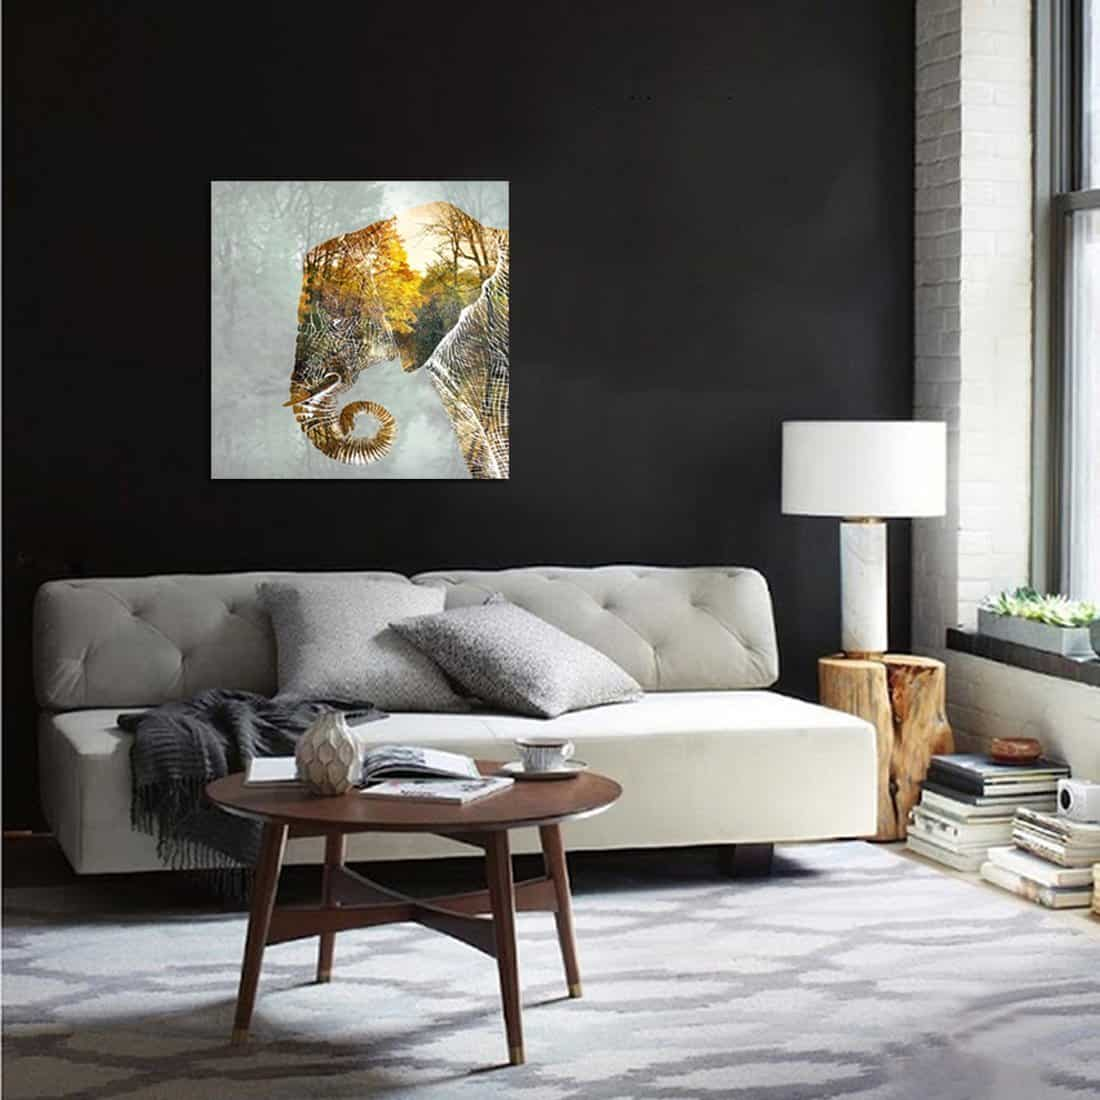 Tips ideas for choosing elephant decor over 40 photos - Wall paintings for living room ...